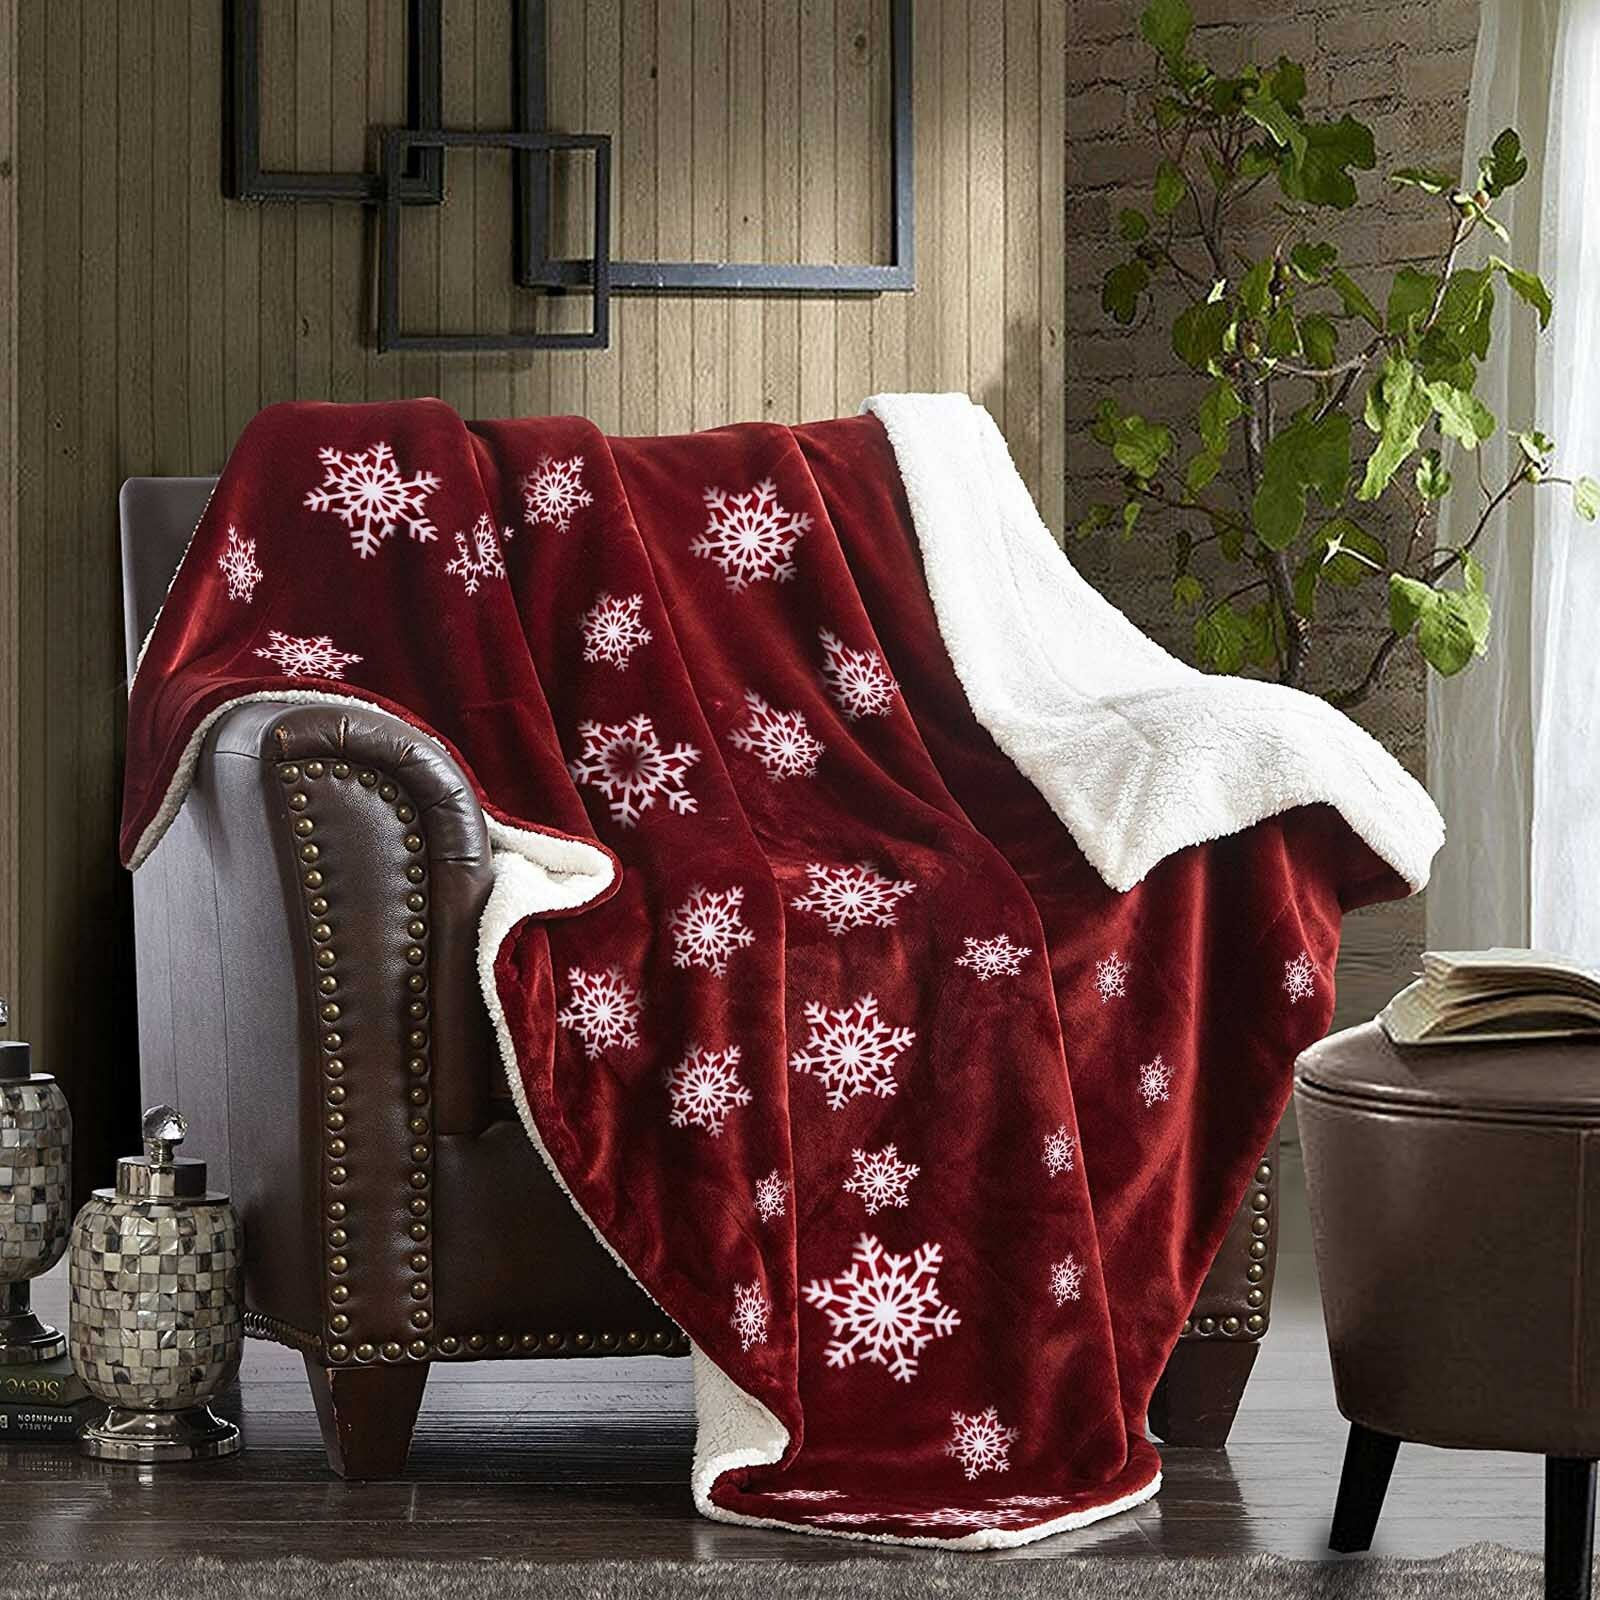 Large Christmas Mink Throw Warm Fleece Blanket Couch Sofa Bedroom chairs Travel